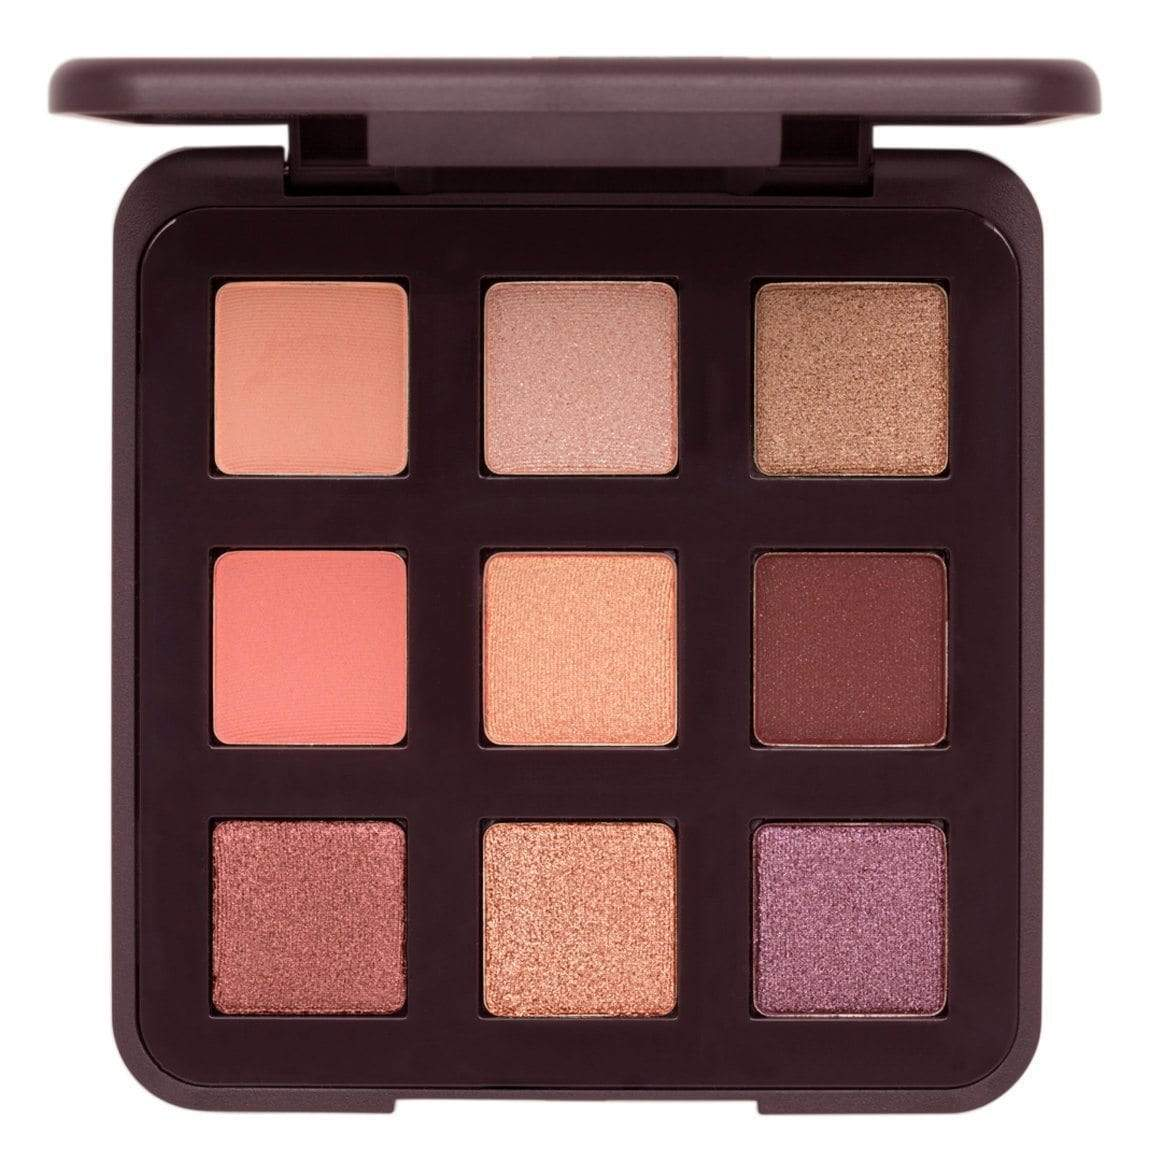 VISEART Eyeshadow Palette - Tryst, eyeshadow palette, London Loves Beauty